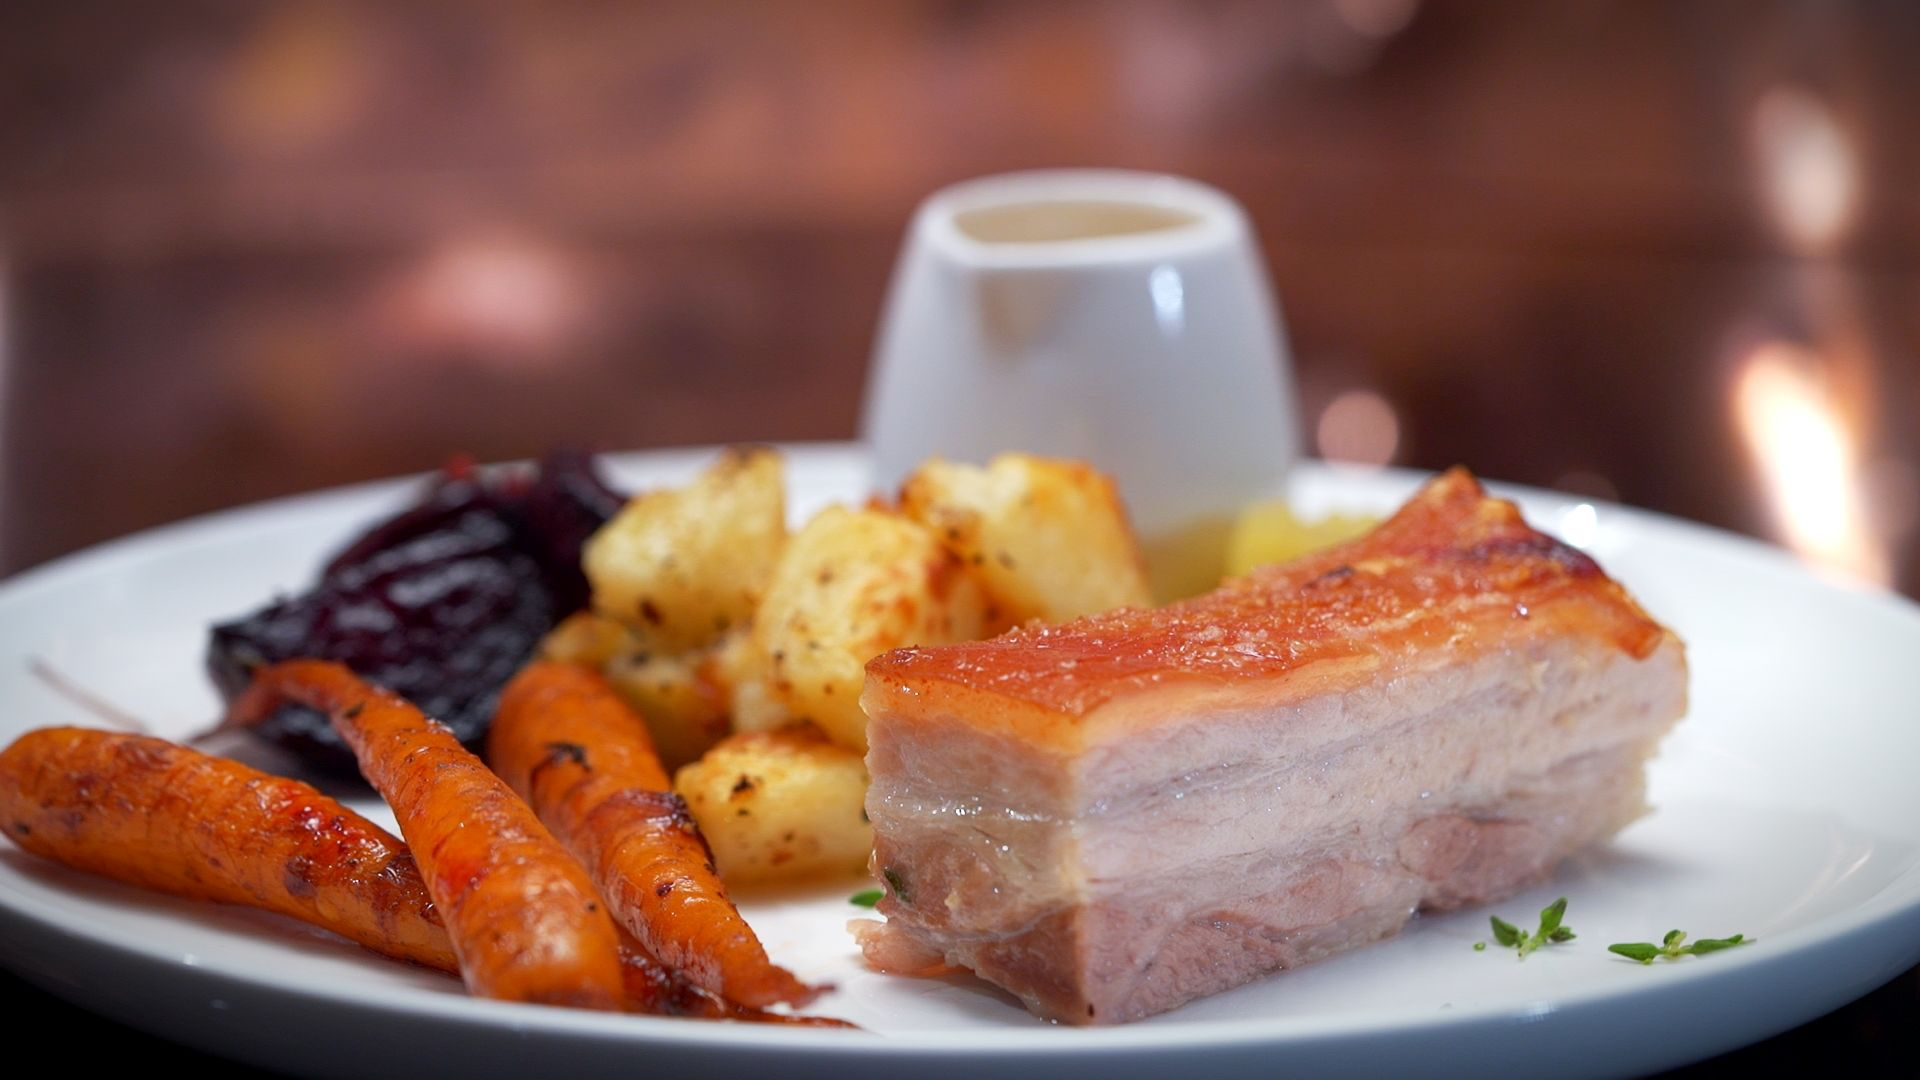 Pin by Judy Oliff on Recipes to Cook Pork, Pork belly